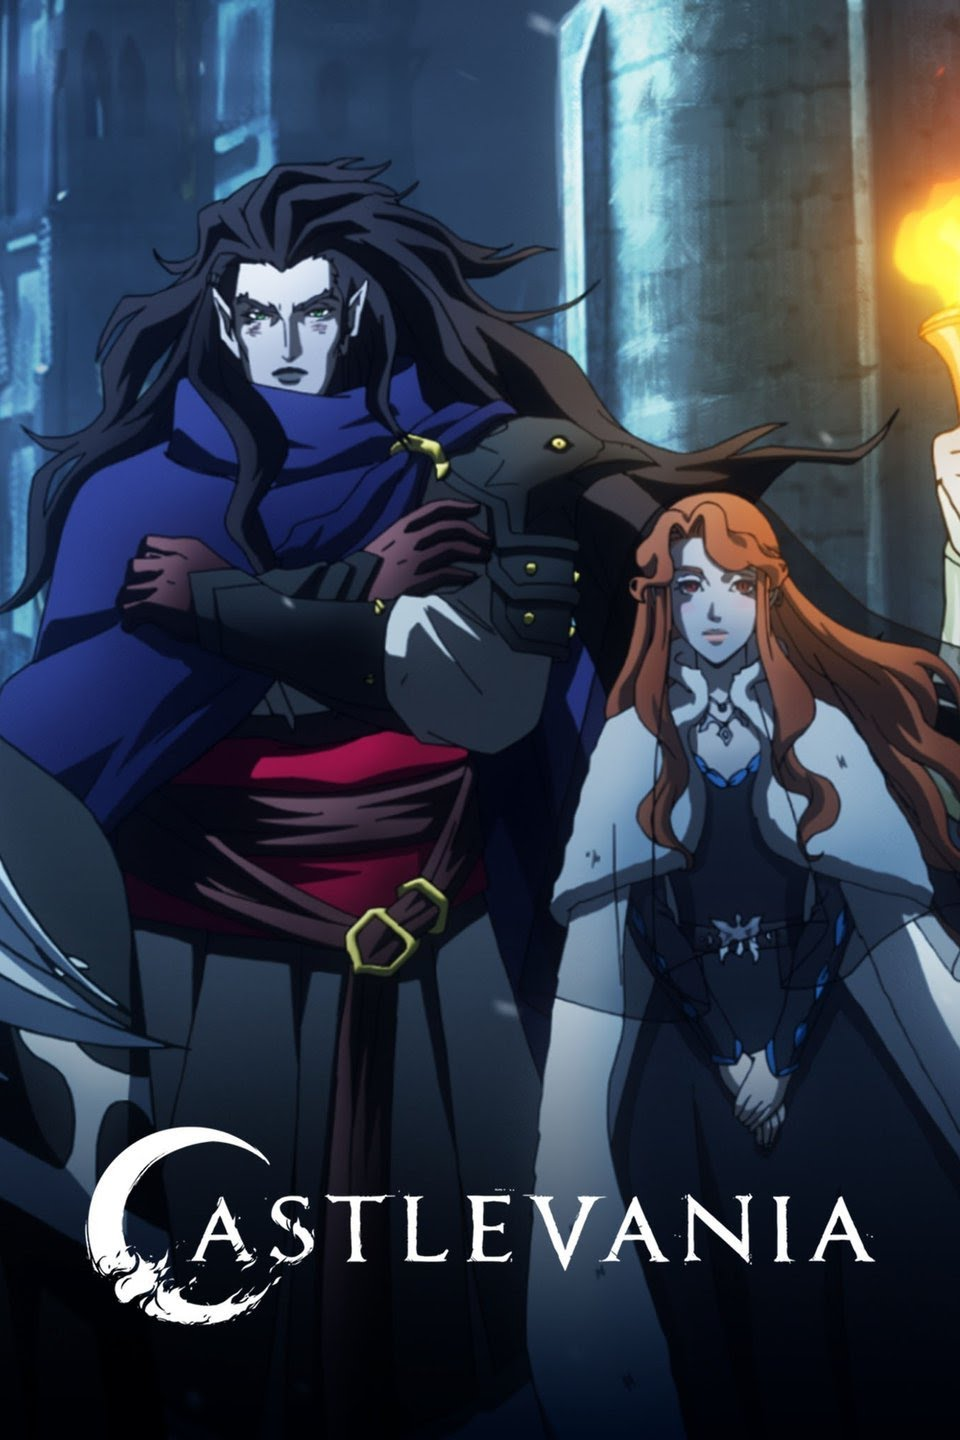 Castlevania action anime